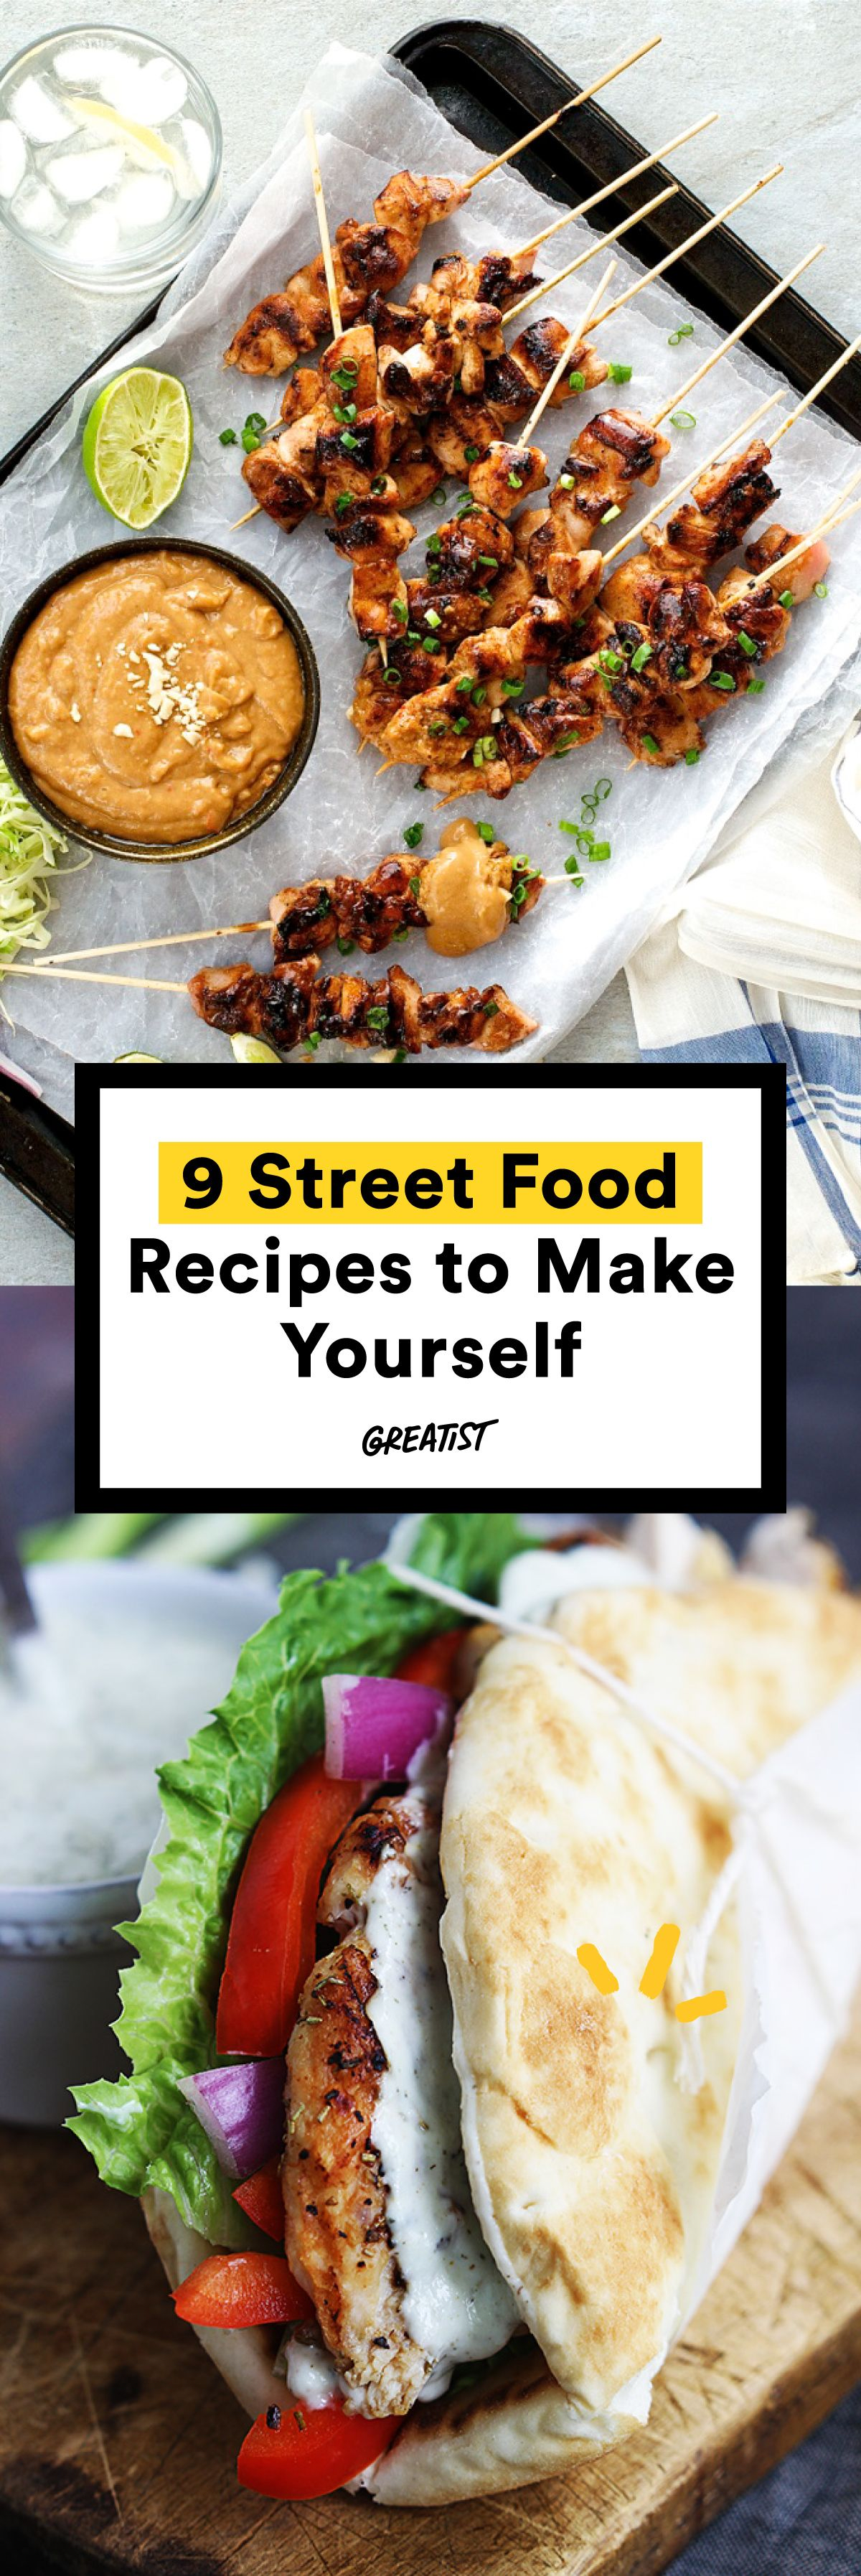 9 street food recipes for when theres no truck in sight 9 street food recipes for when theres no truck in sight forumfinder Choice Image